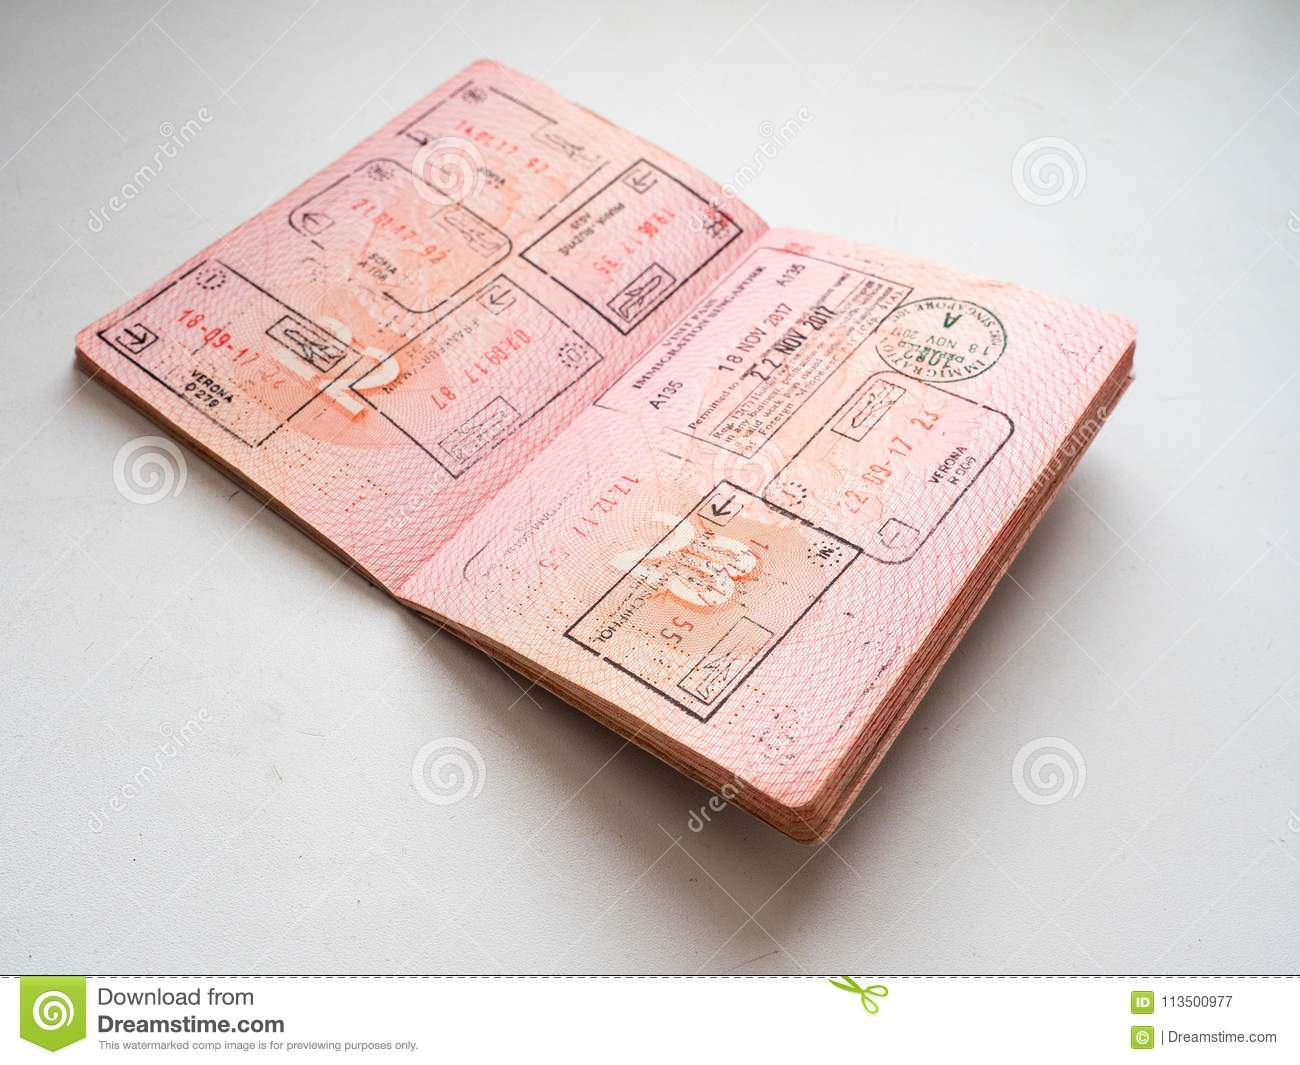 immigration document clipart black and white